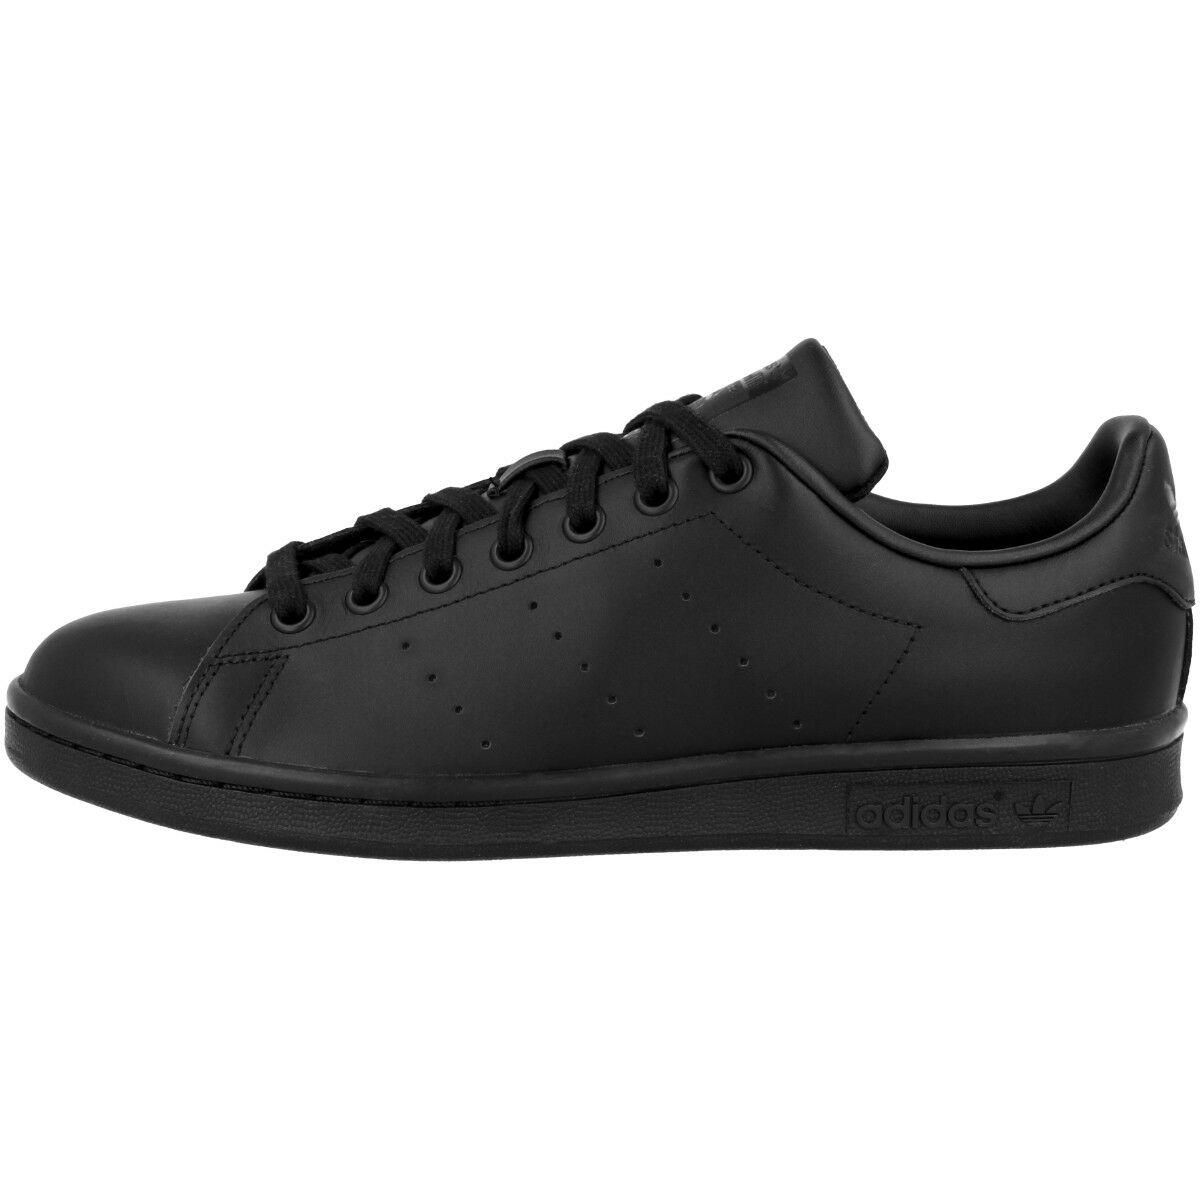 Adidas Stan Smith Scarpe Scarpe da Ginnastica Retrò Nero M20327 Tennis Court Superstar Samba